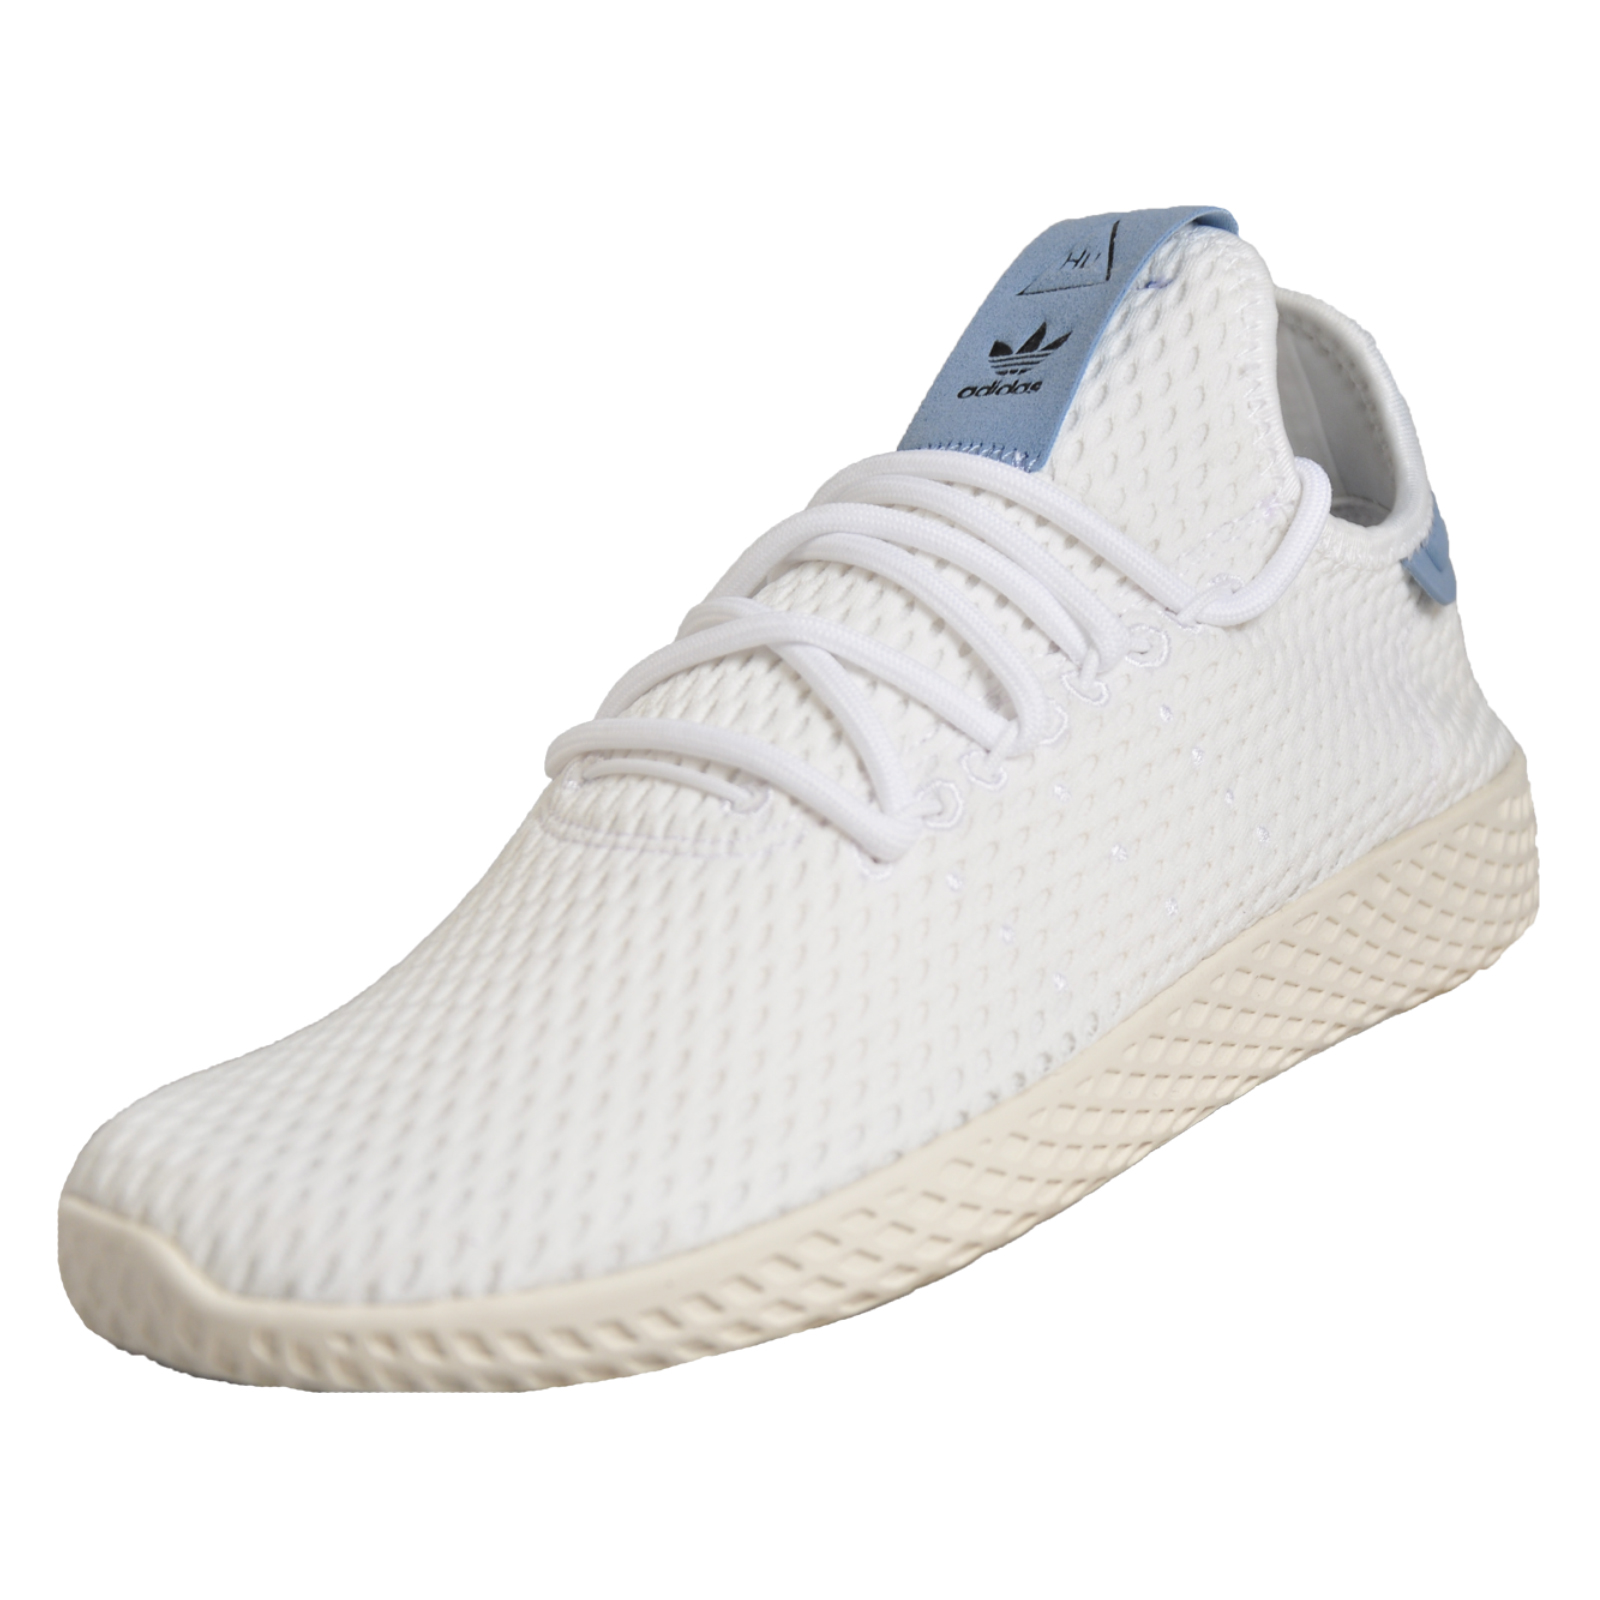 c41a1e4e9 Adidas Originals Pharrell Williams x Tennis Hu Mens Ltd Edition Retro  Classic Trainers White